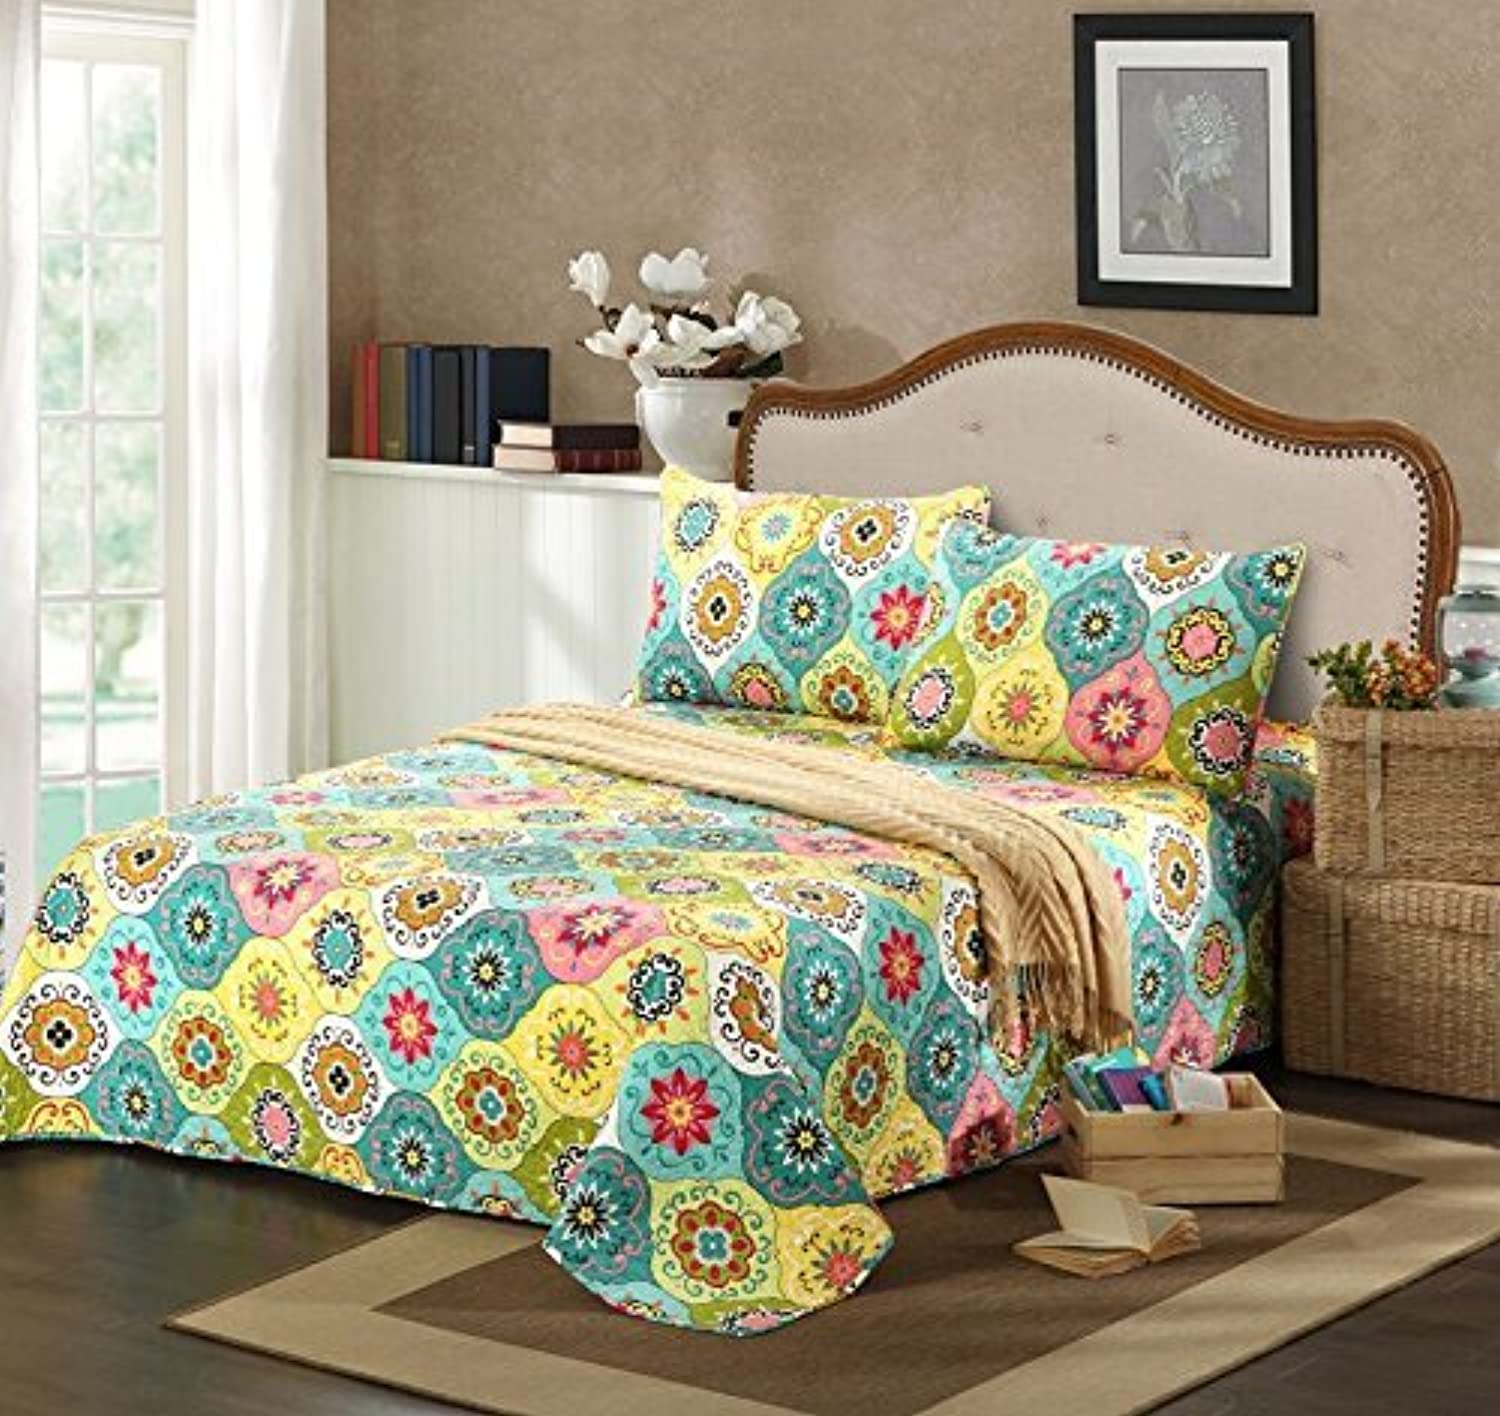 Tache Home Fashion SD3199-Cal King Tache 3 Piece Geo Multi Spring Flower Reversible Bedspread Quilt Set, California